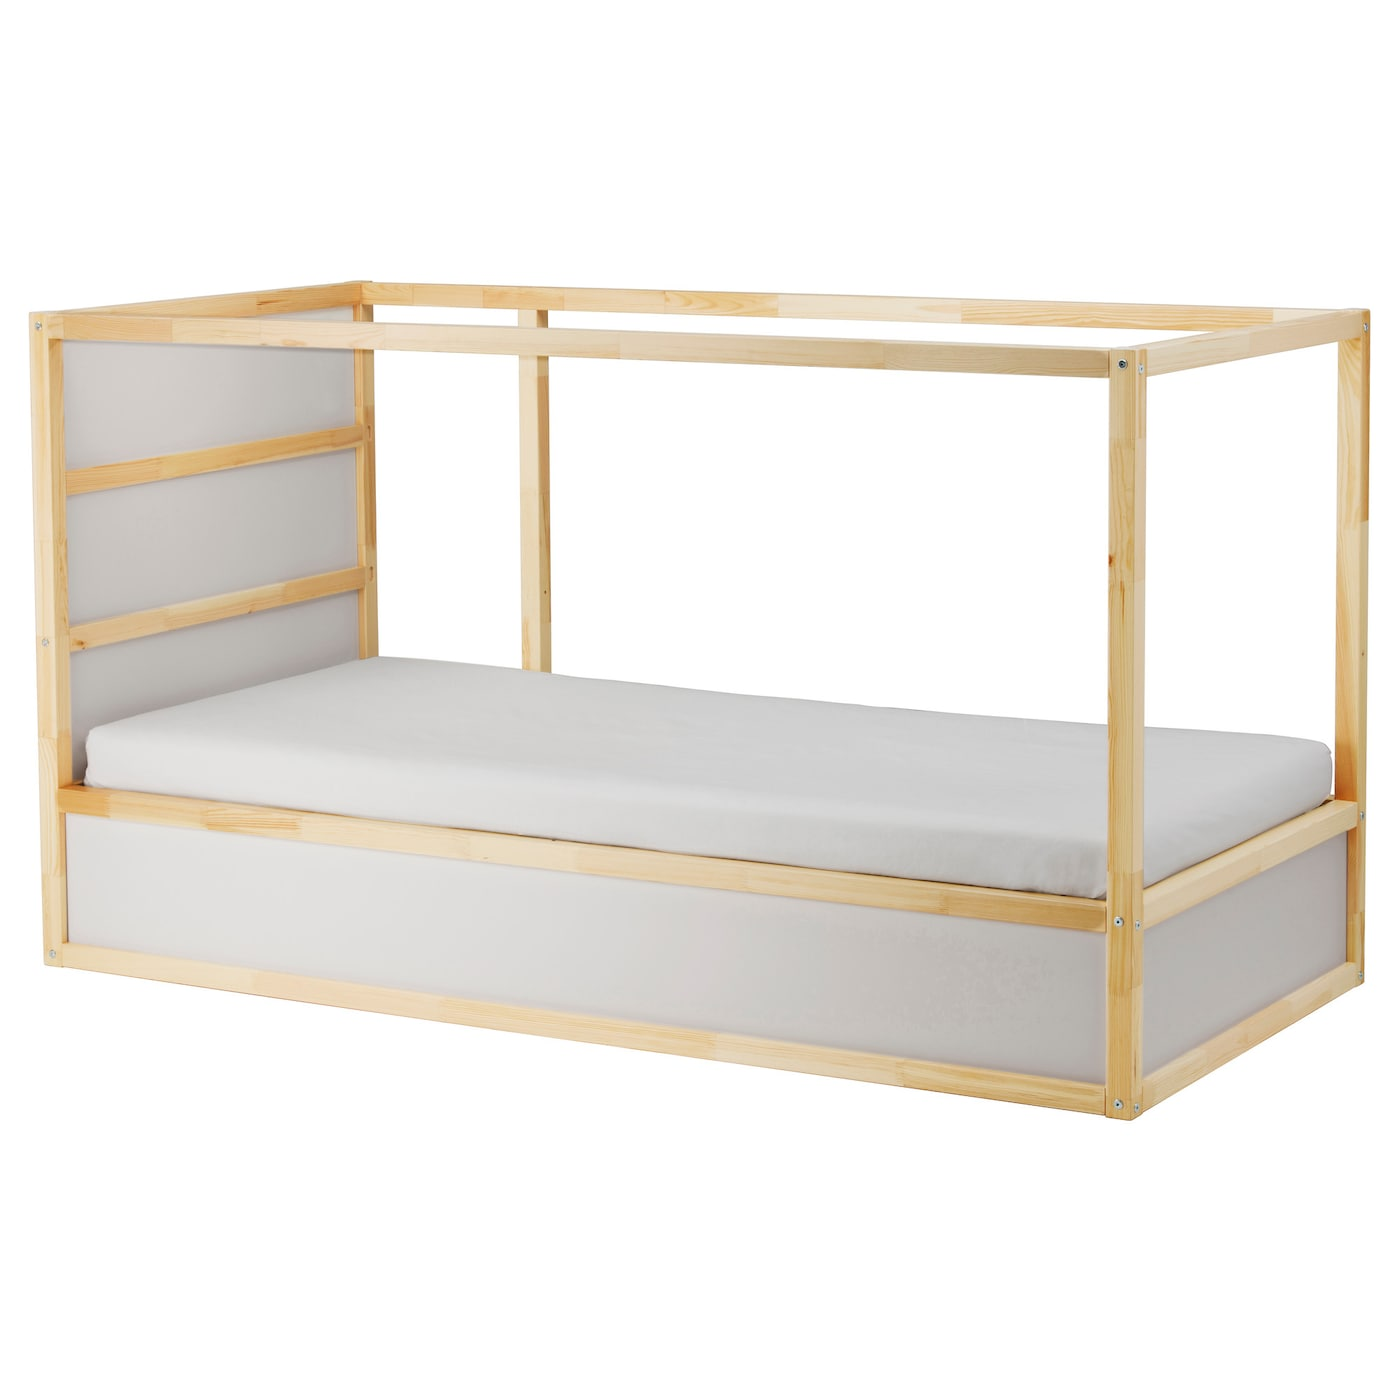 Kura reversible bed white pine 90x200 cm ikea for Lit 80x190 ikea